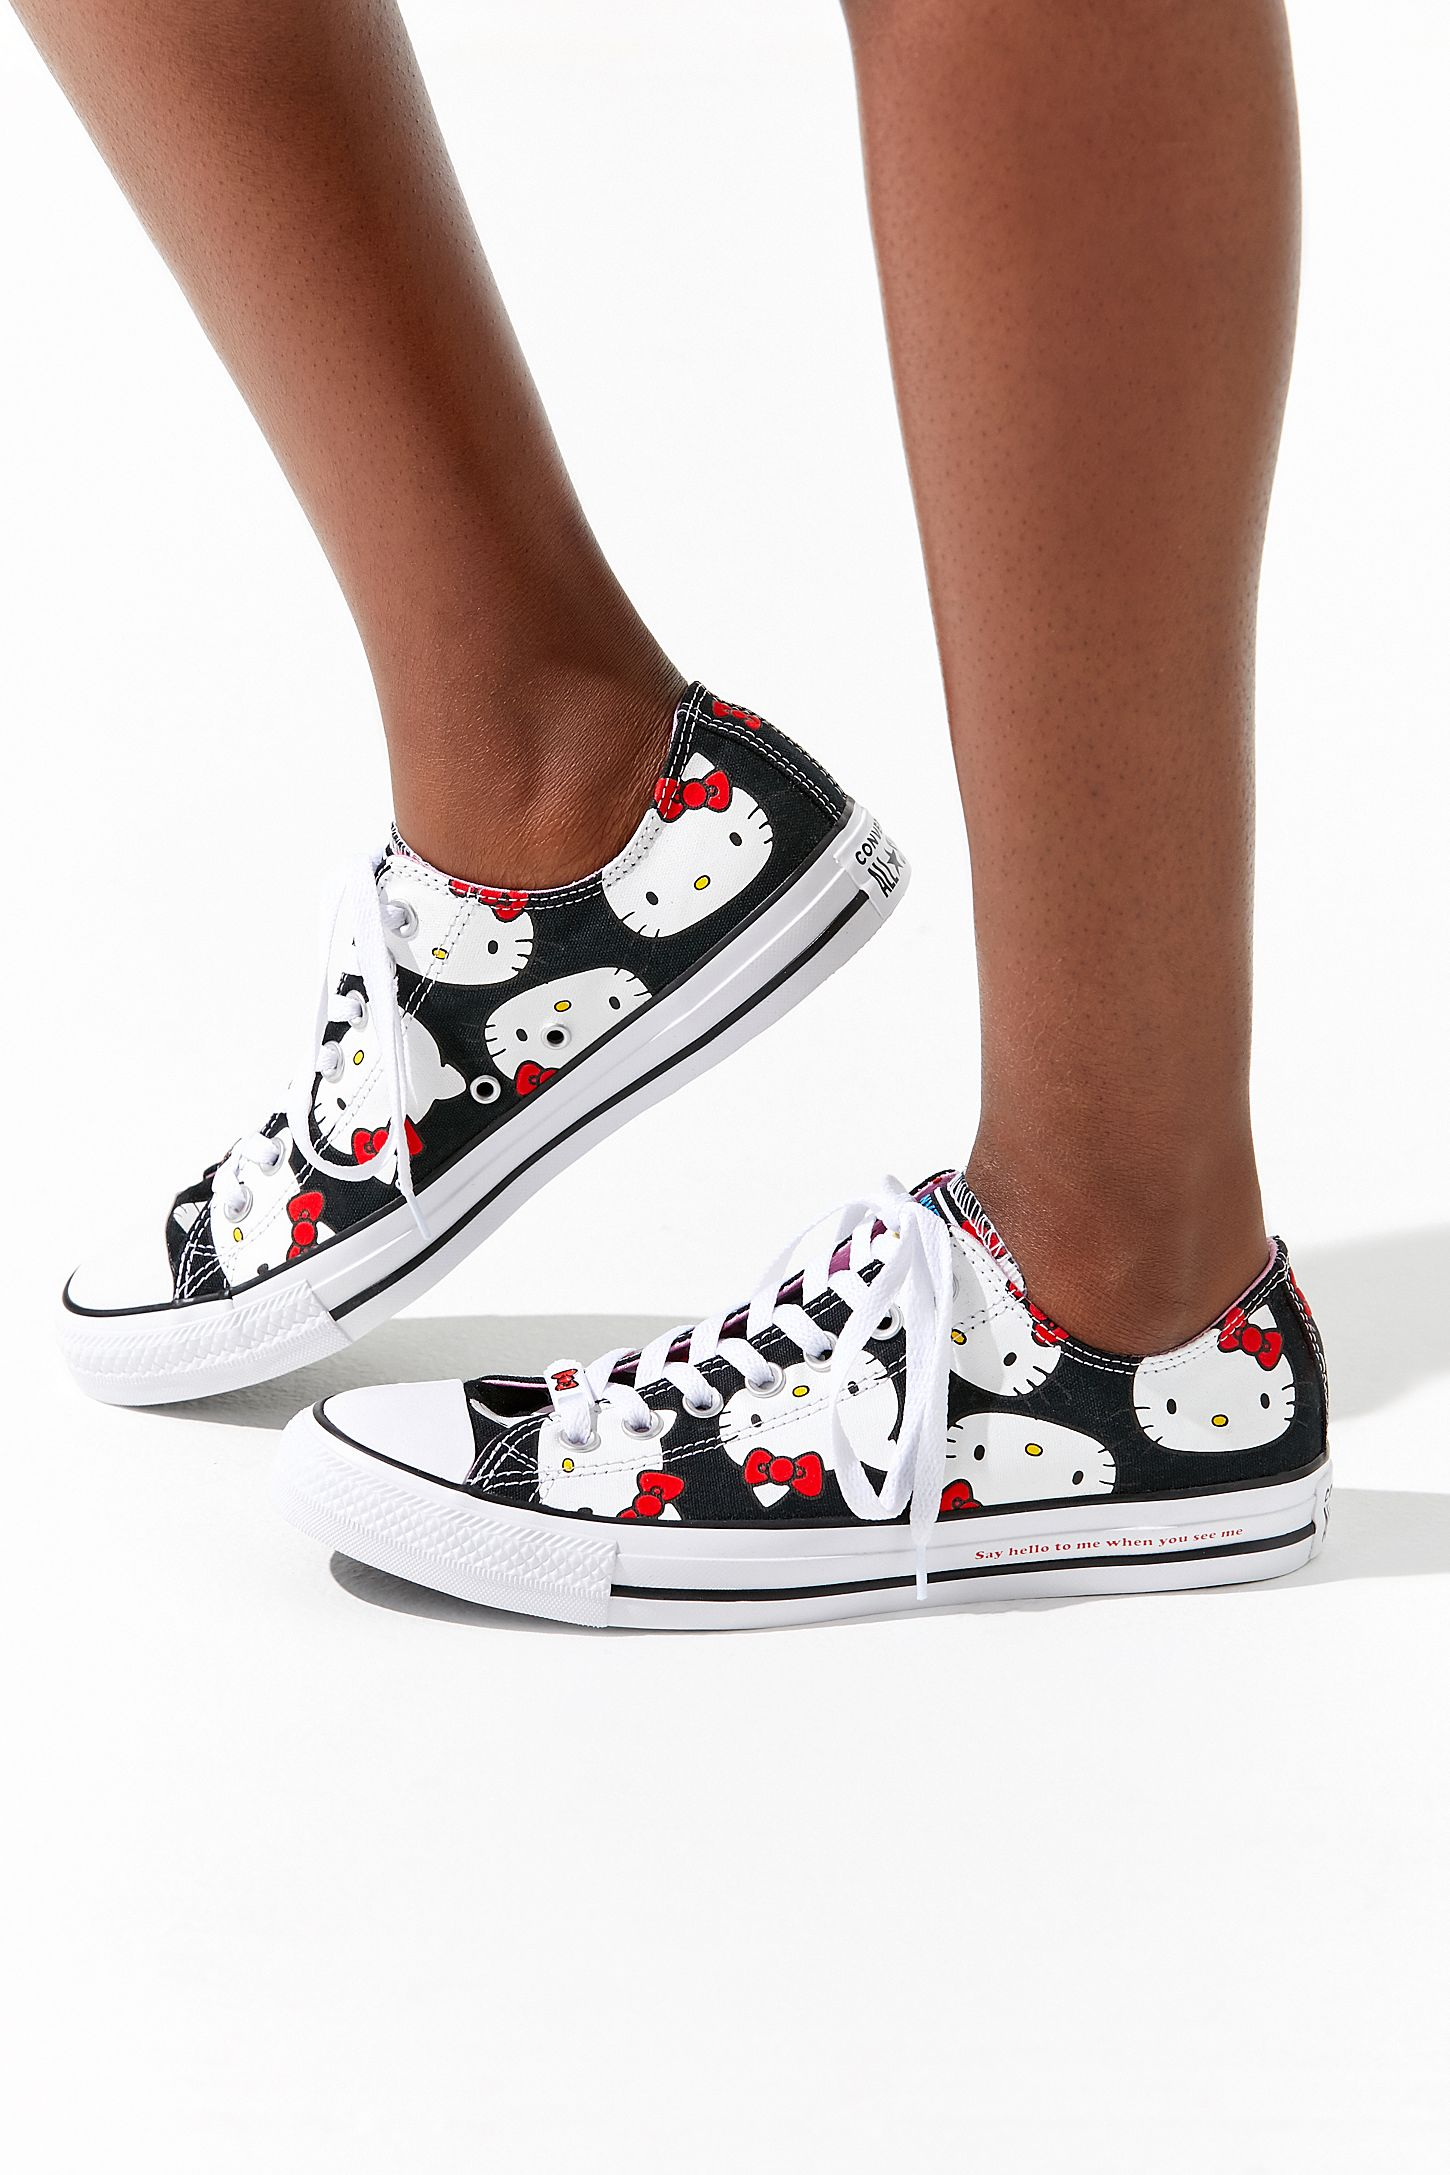 14eb917f9 Converse X Hello Kitty Chuck Taylor All Star Low Top Sneaker. Tap image to  zoom. Hover to zoom. Double Tap to Zoom